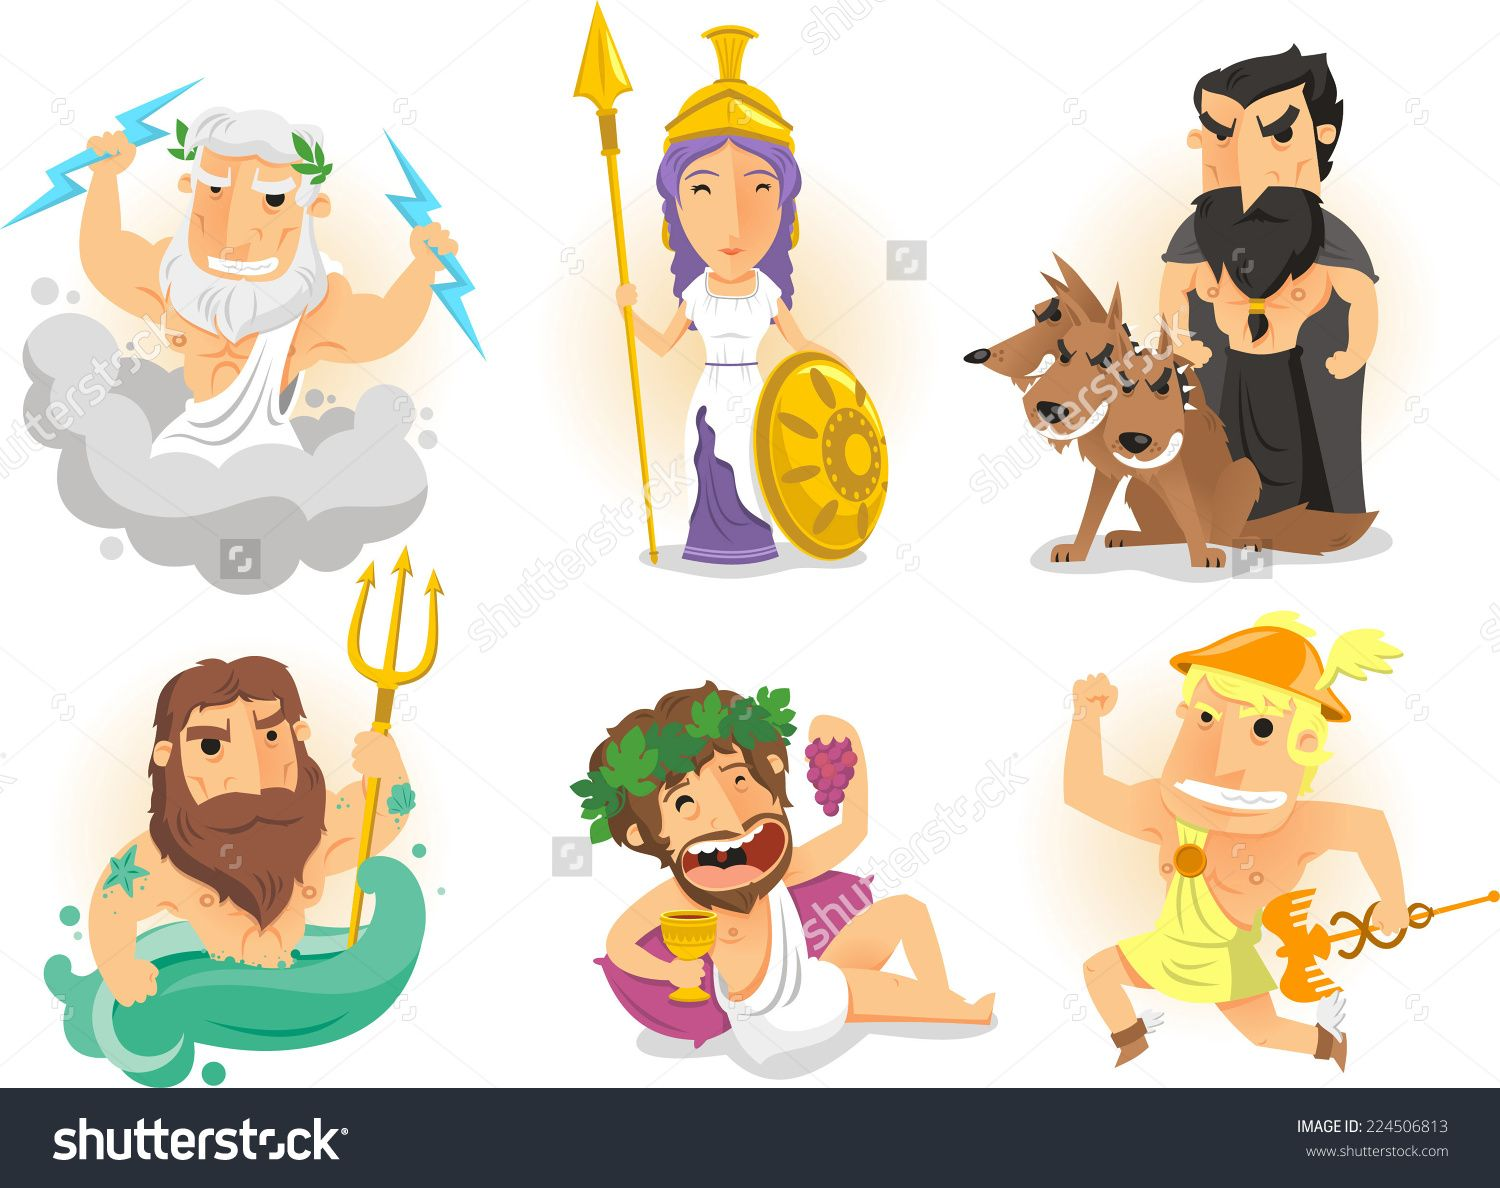 clipart black and white download Pin on bogowie gods. Zeus clipart hades